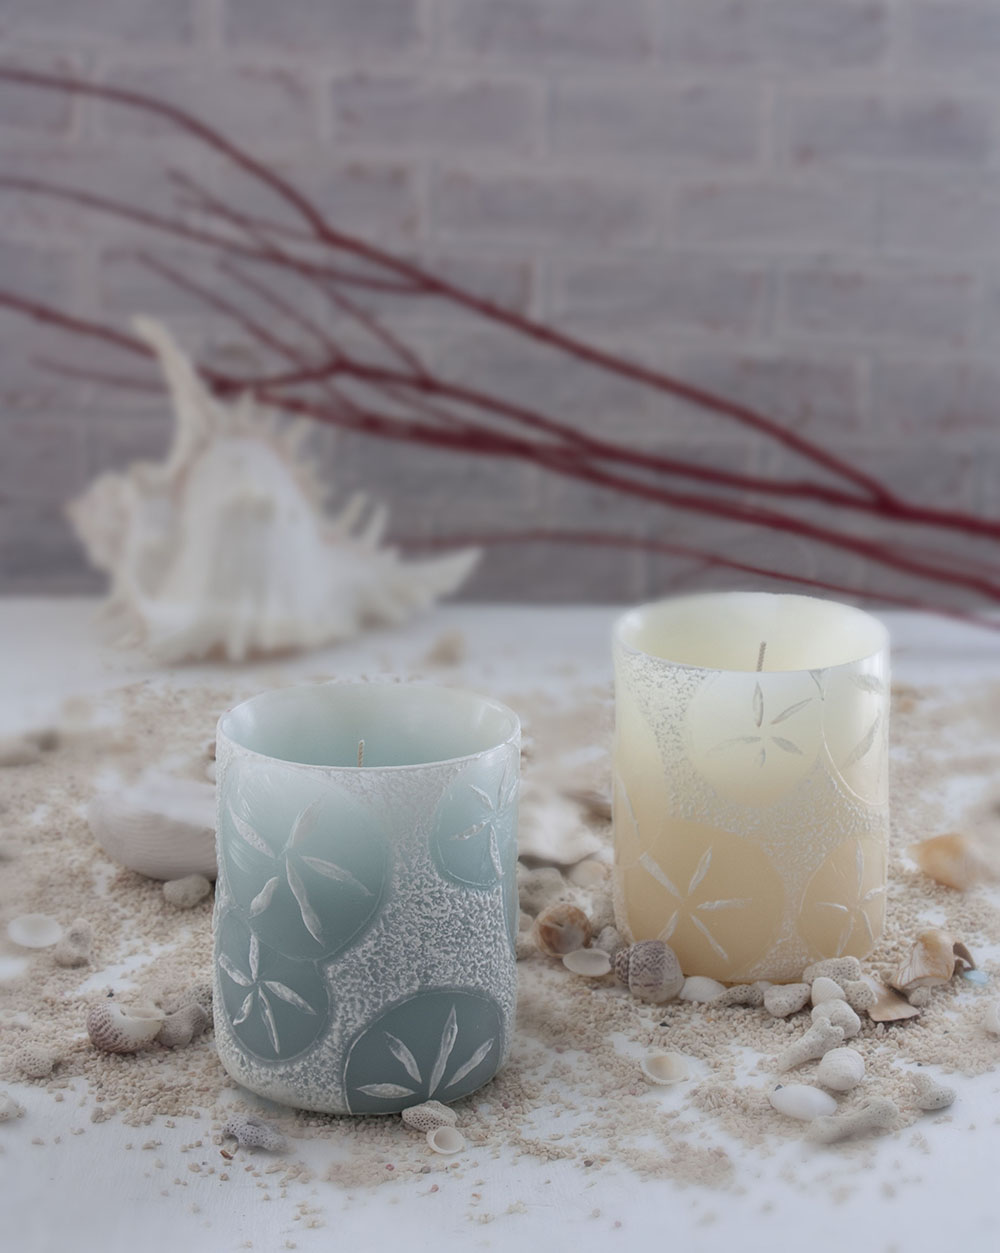 29715 - Sand Dollar Luminary in Seafoam - $20